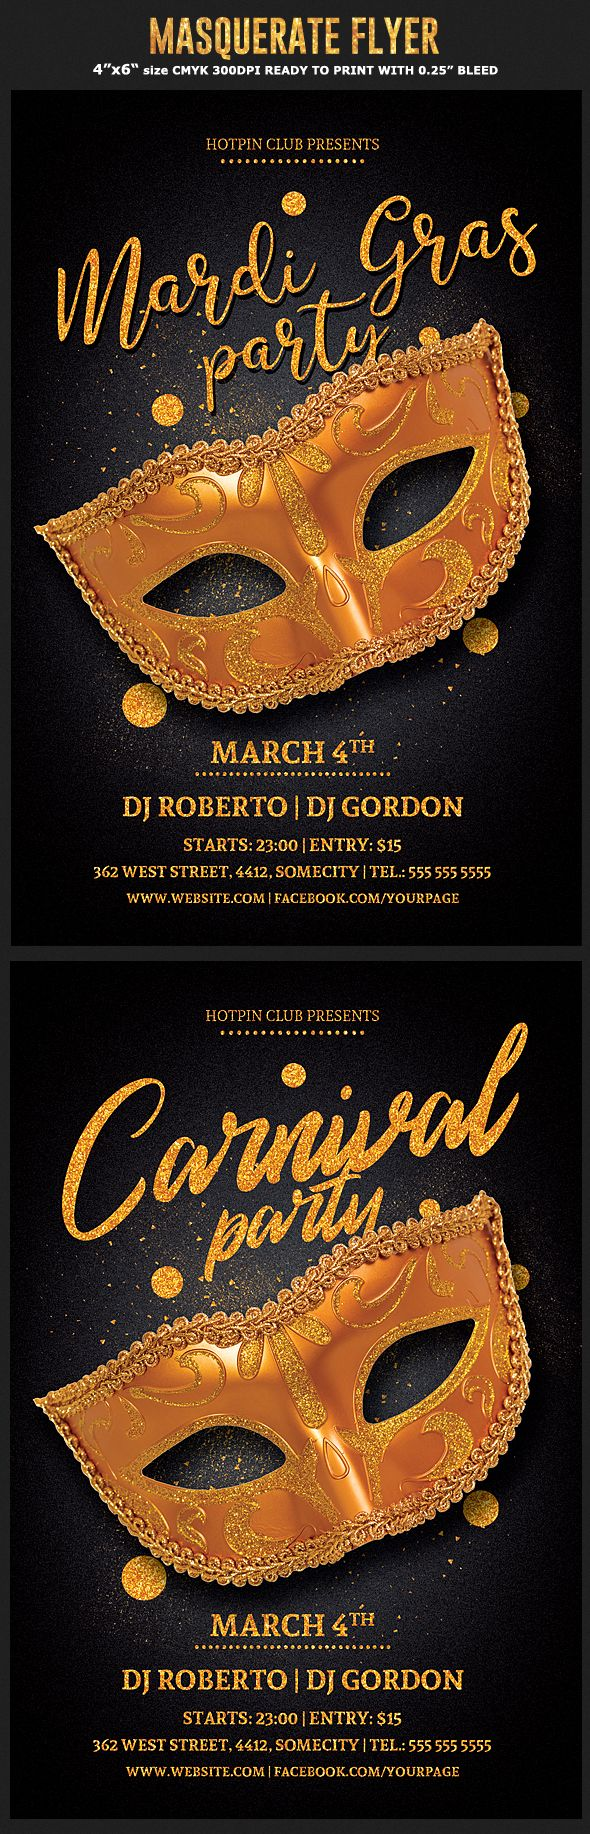 Masquerade Mardi Gras Flyer Flyer Design Inspirations Party